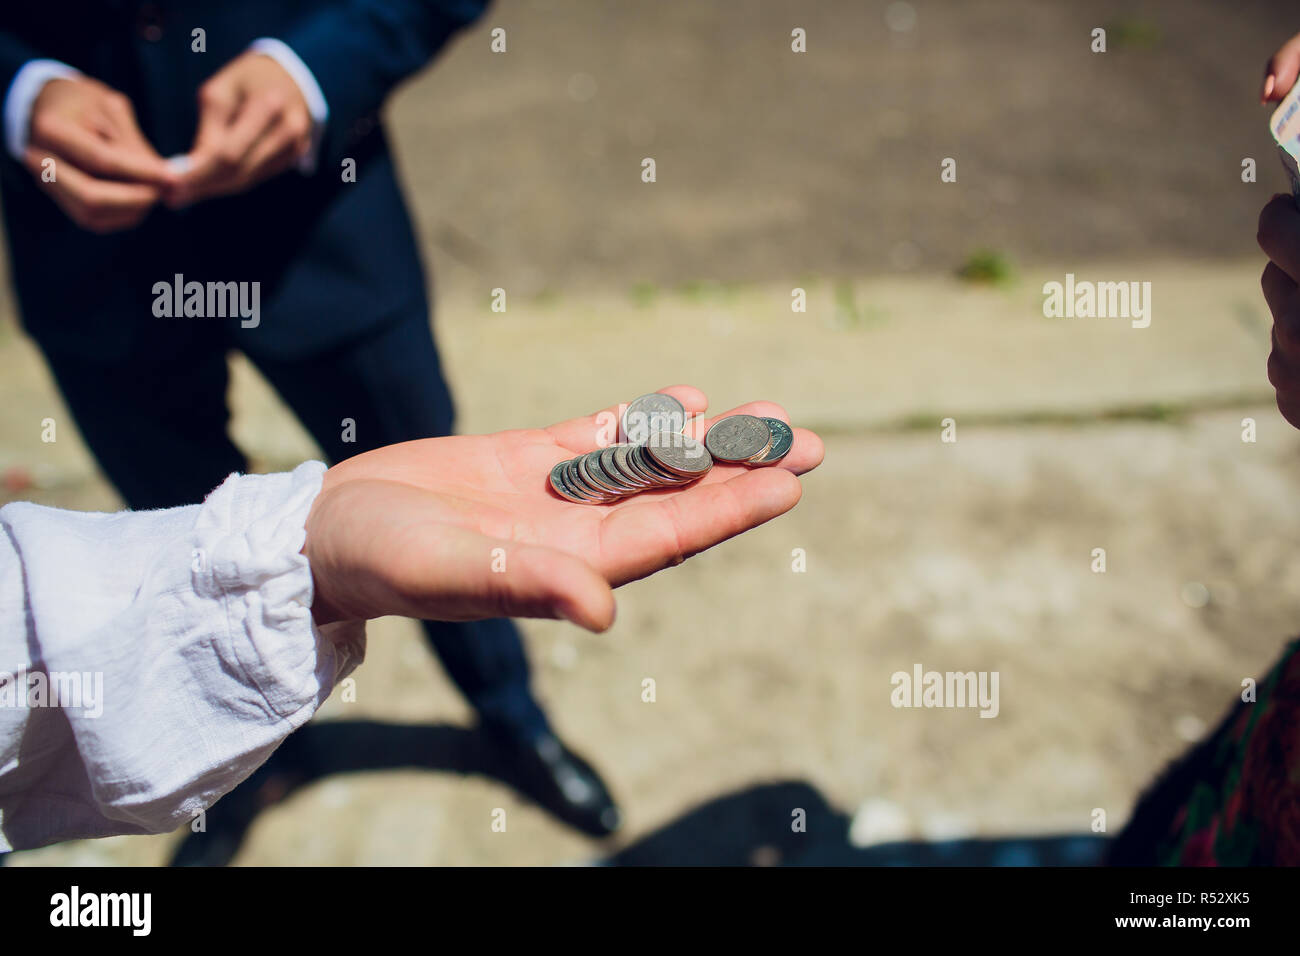 Hand injured bloody finger holds banknote grey background. Dirty money concept. Bloody currency. Money covered with traces of crime. Handover criminal profit. Dollar marked by murder. - Stock Image